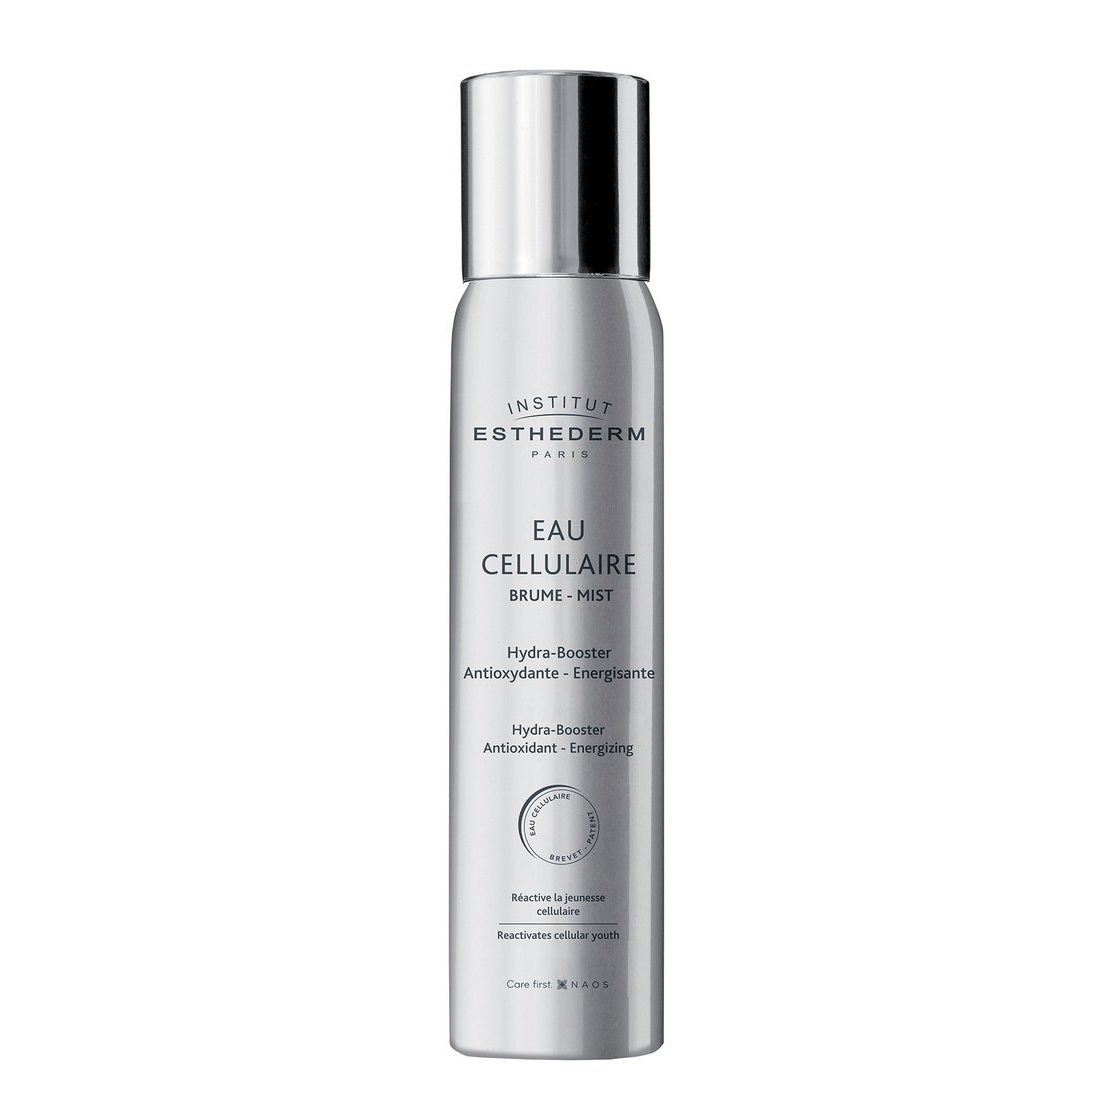 Institute Esthederm Cellular Water Mist